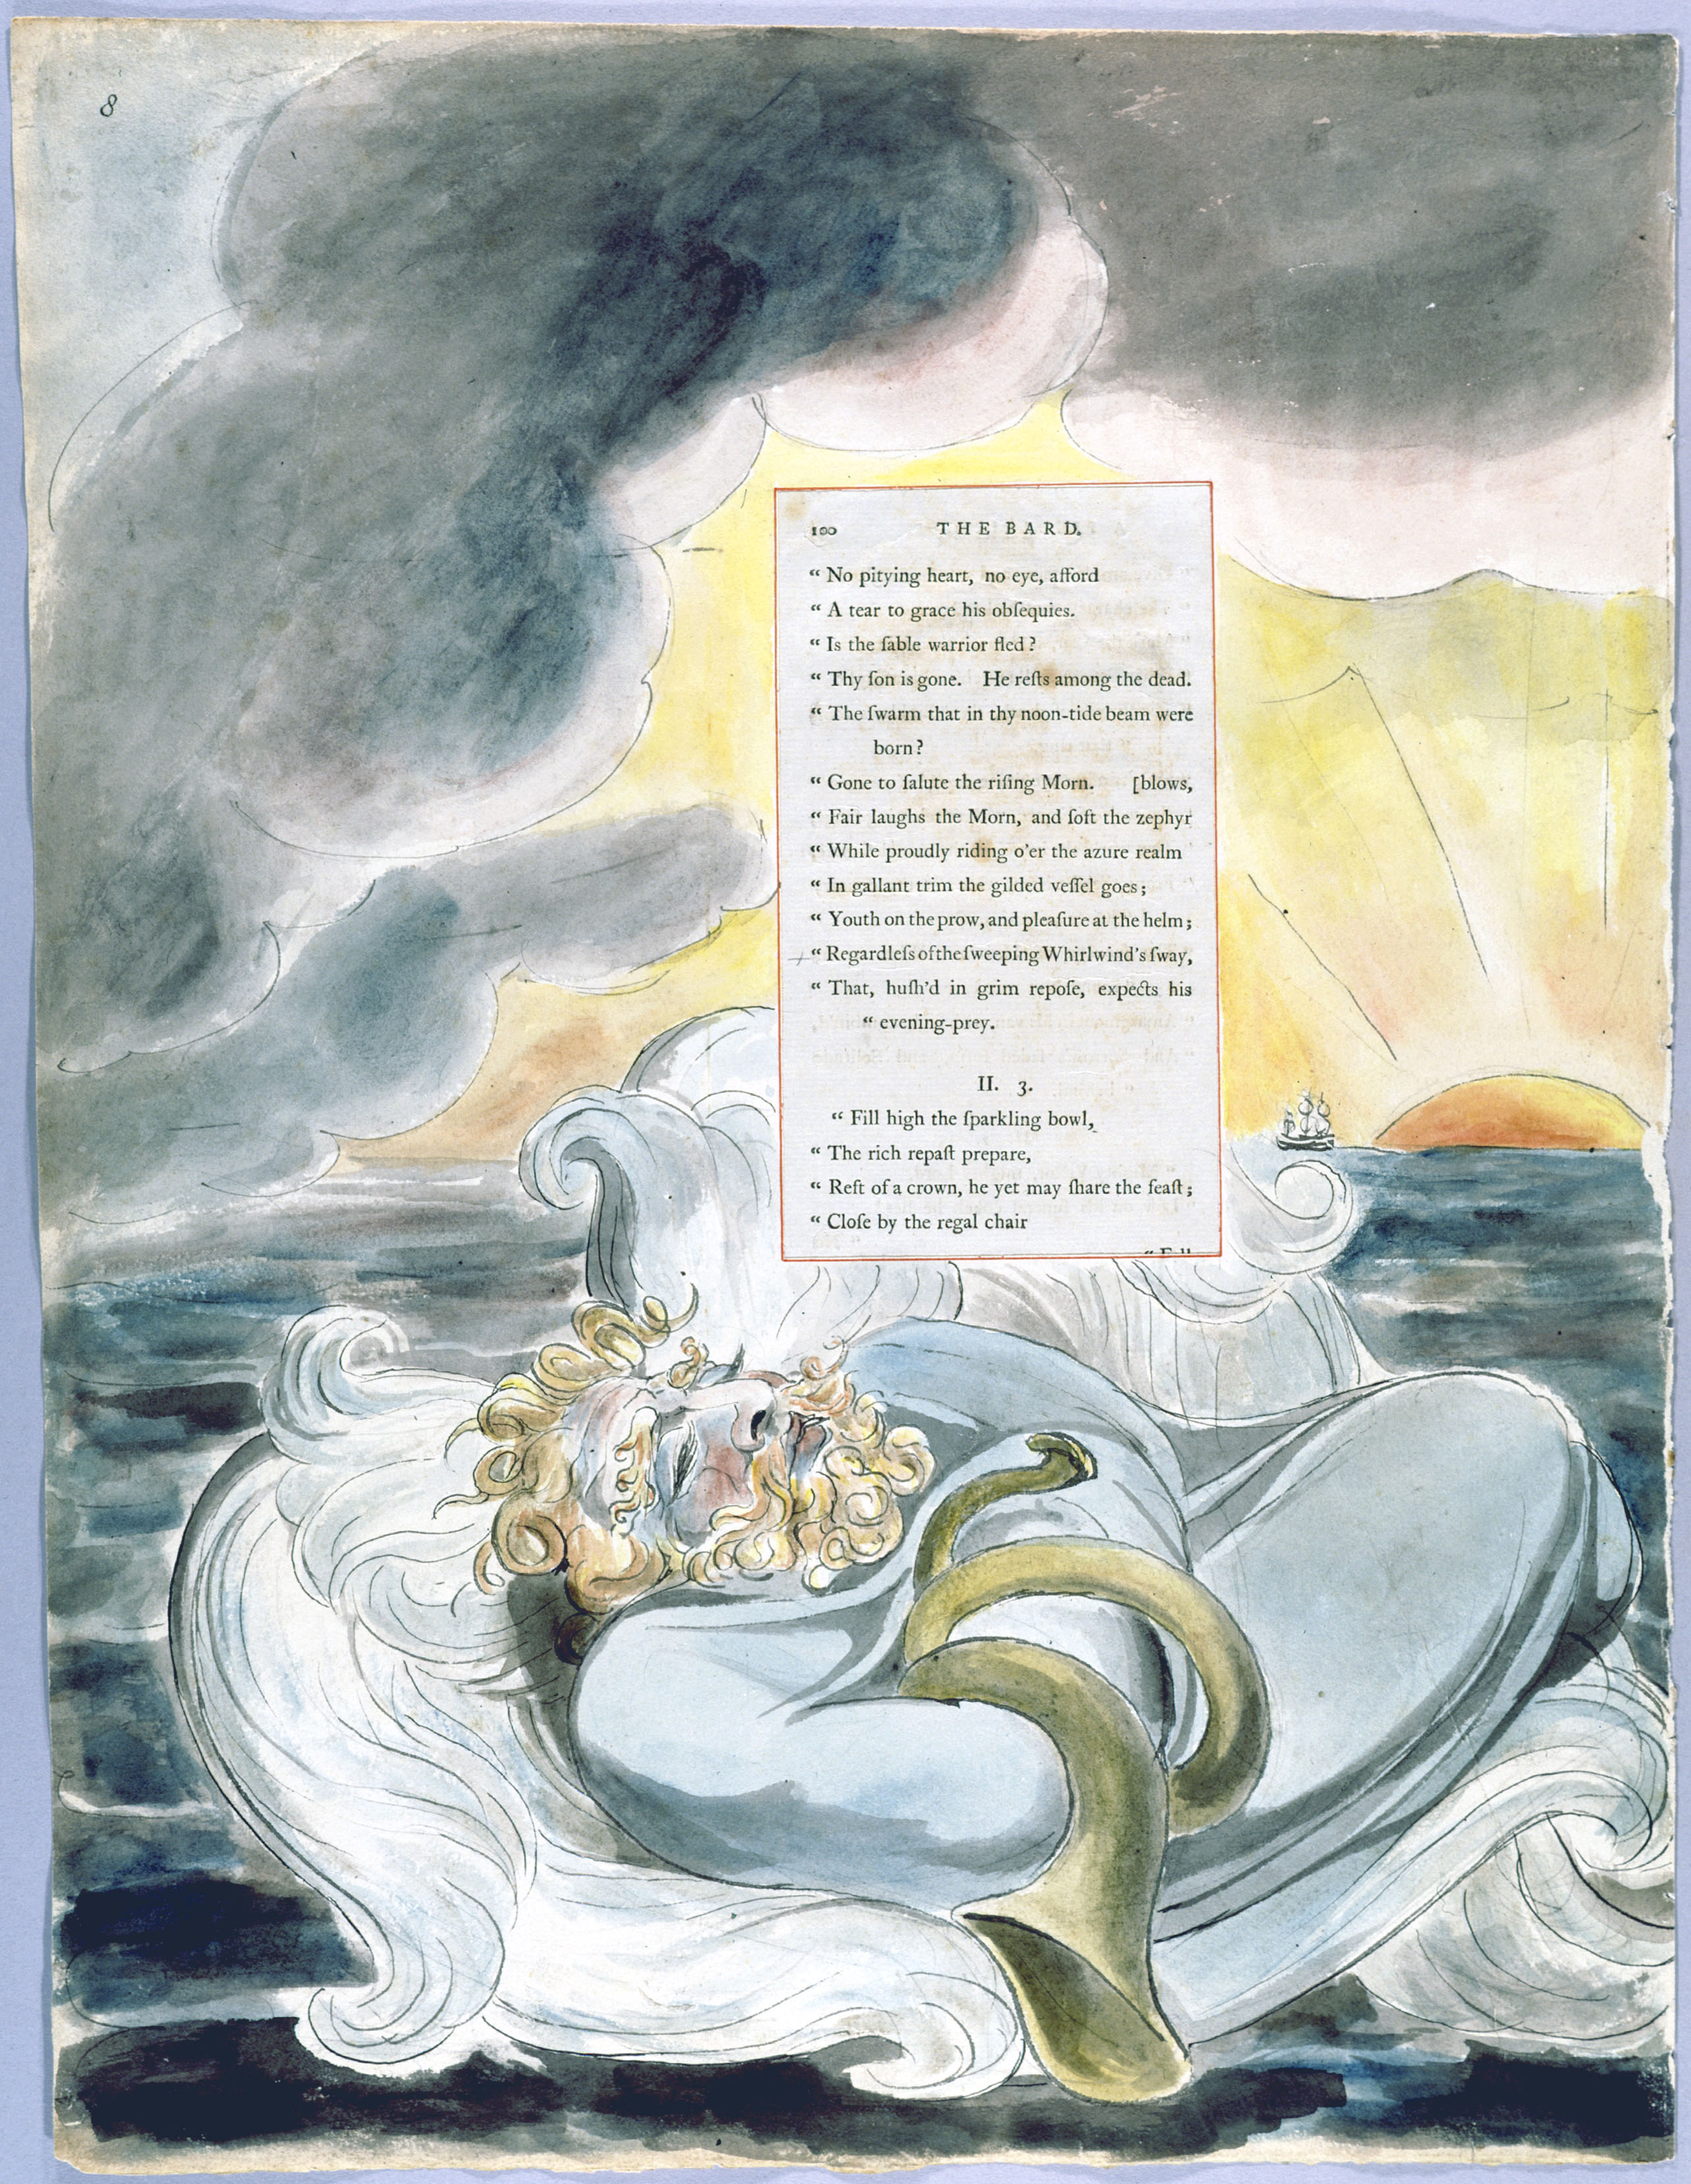 William Blake - The Poems of Thomas Gray, Design 60 The Bard 08.jpg